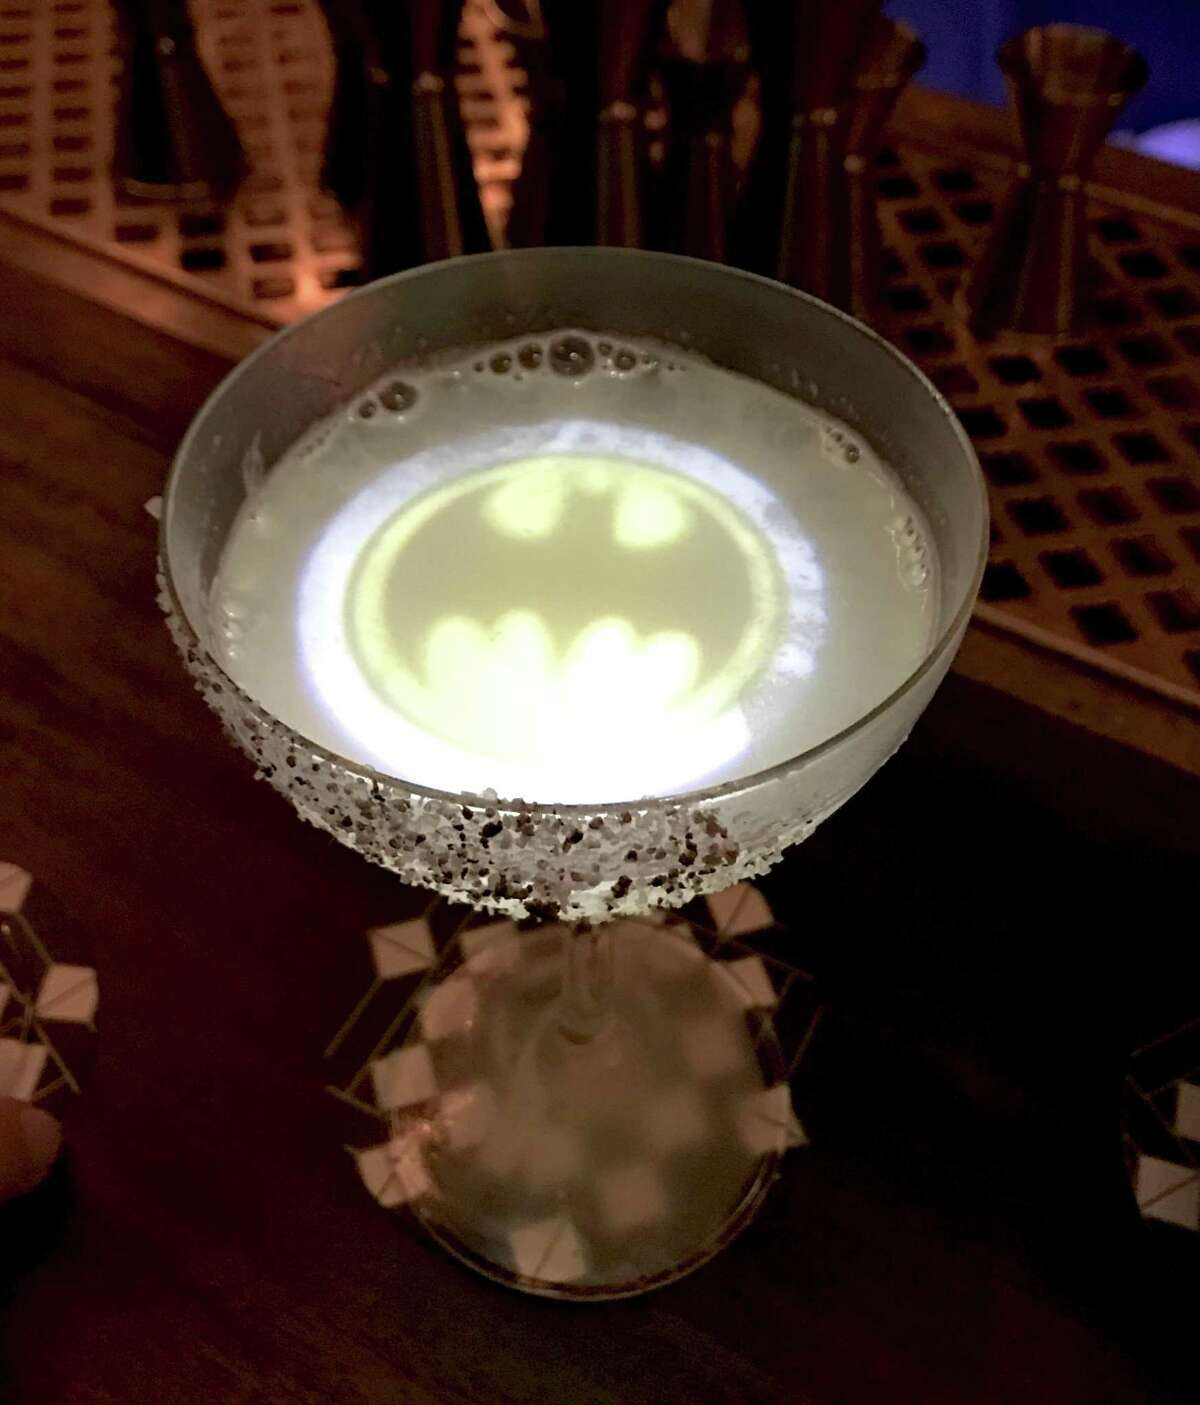 The Batman of Mexico cocktail, with tequila, corn, chile and lime, at Downstairs, the bar under The Esquire Tavern. The bat signal comes from a keychain light with which the bartenders are equipped and which they activate when the cocktail is served - at least the first time.